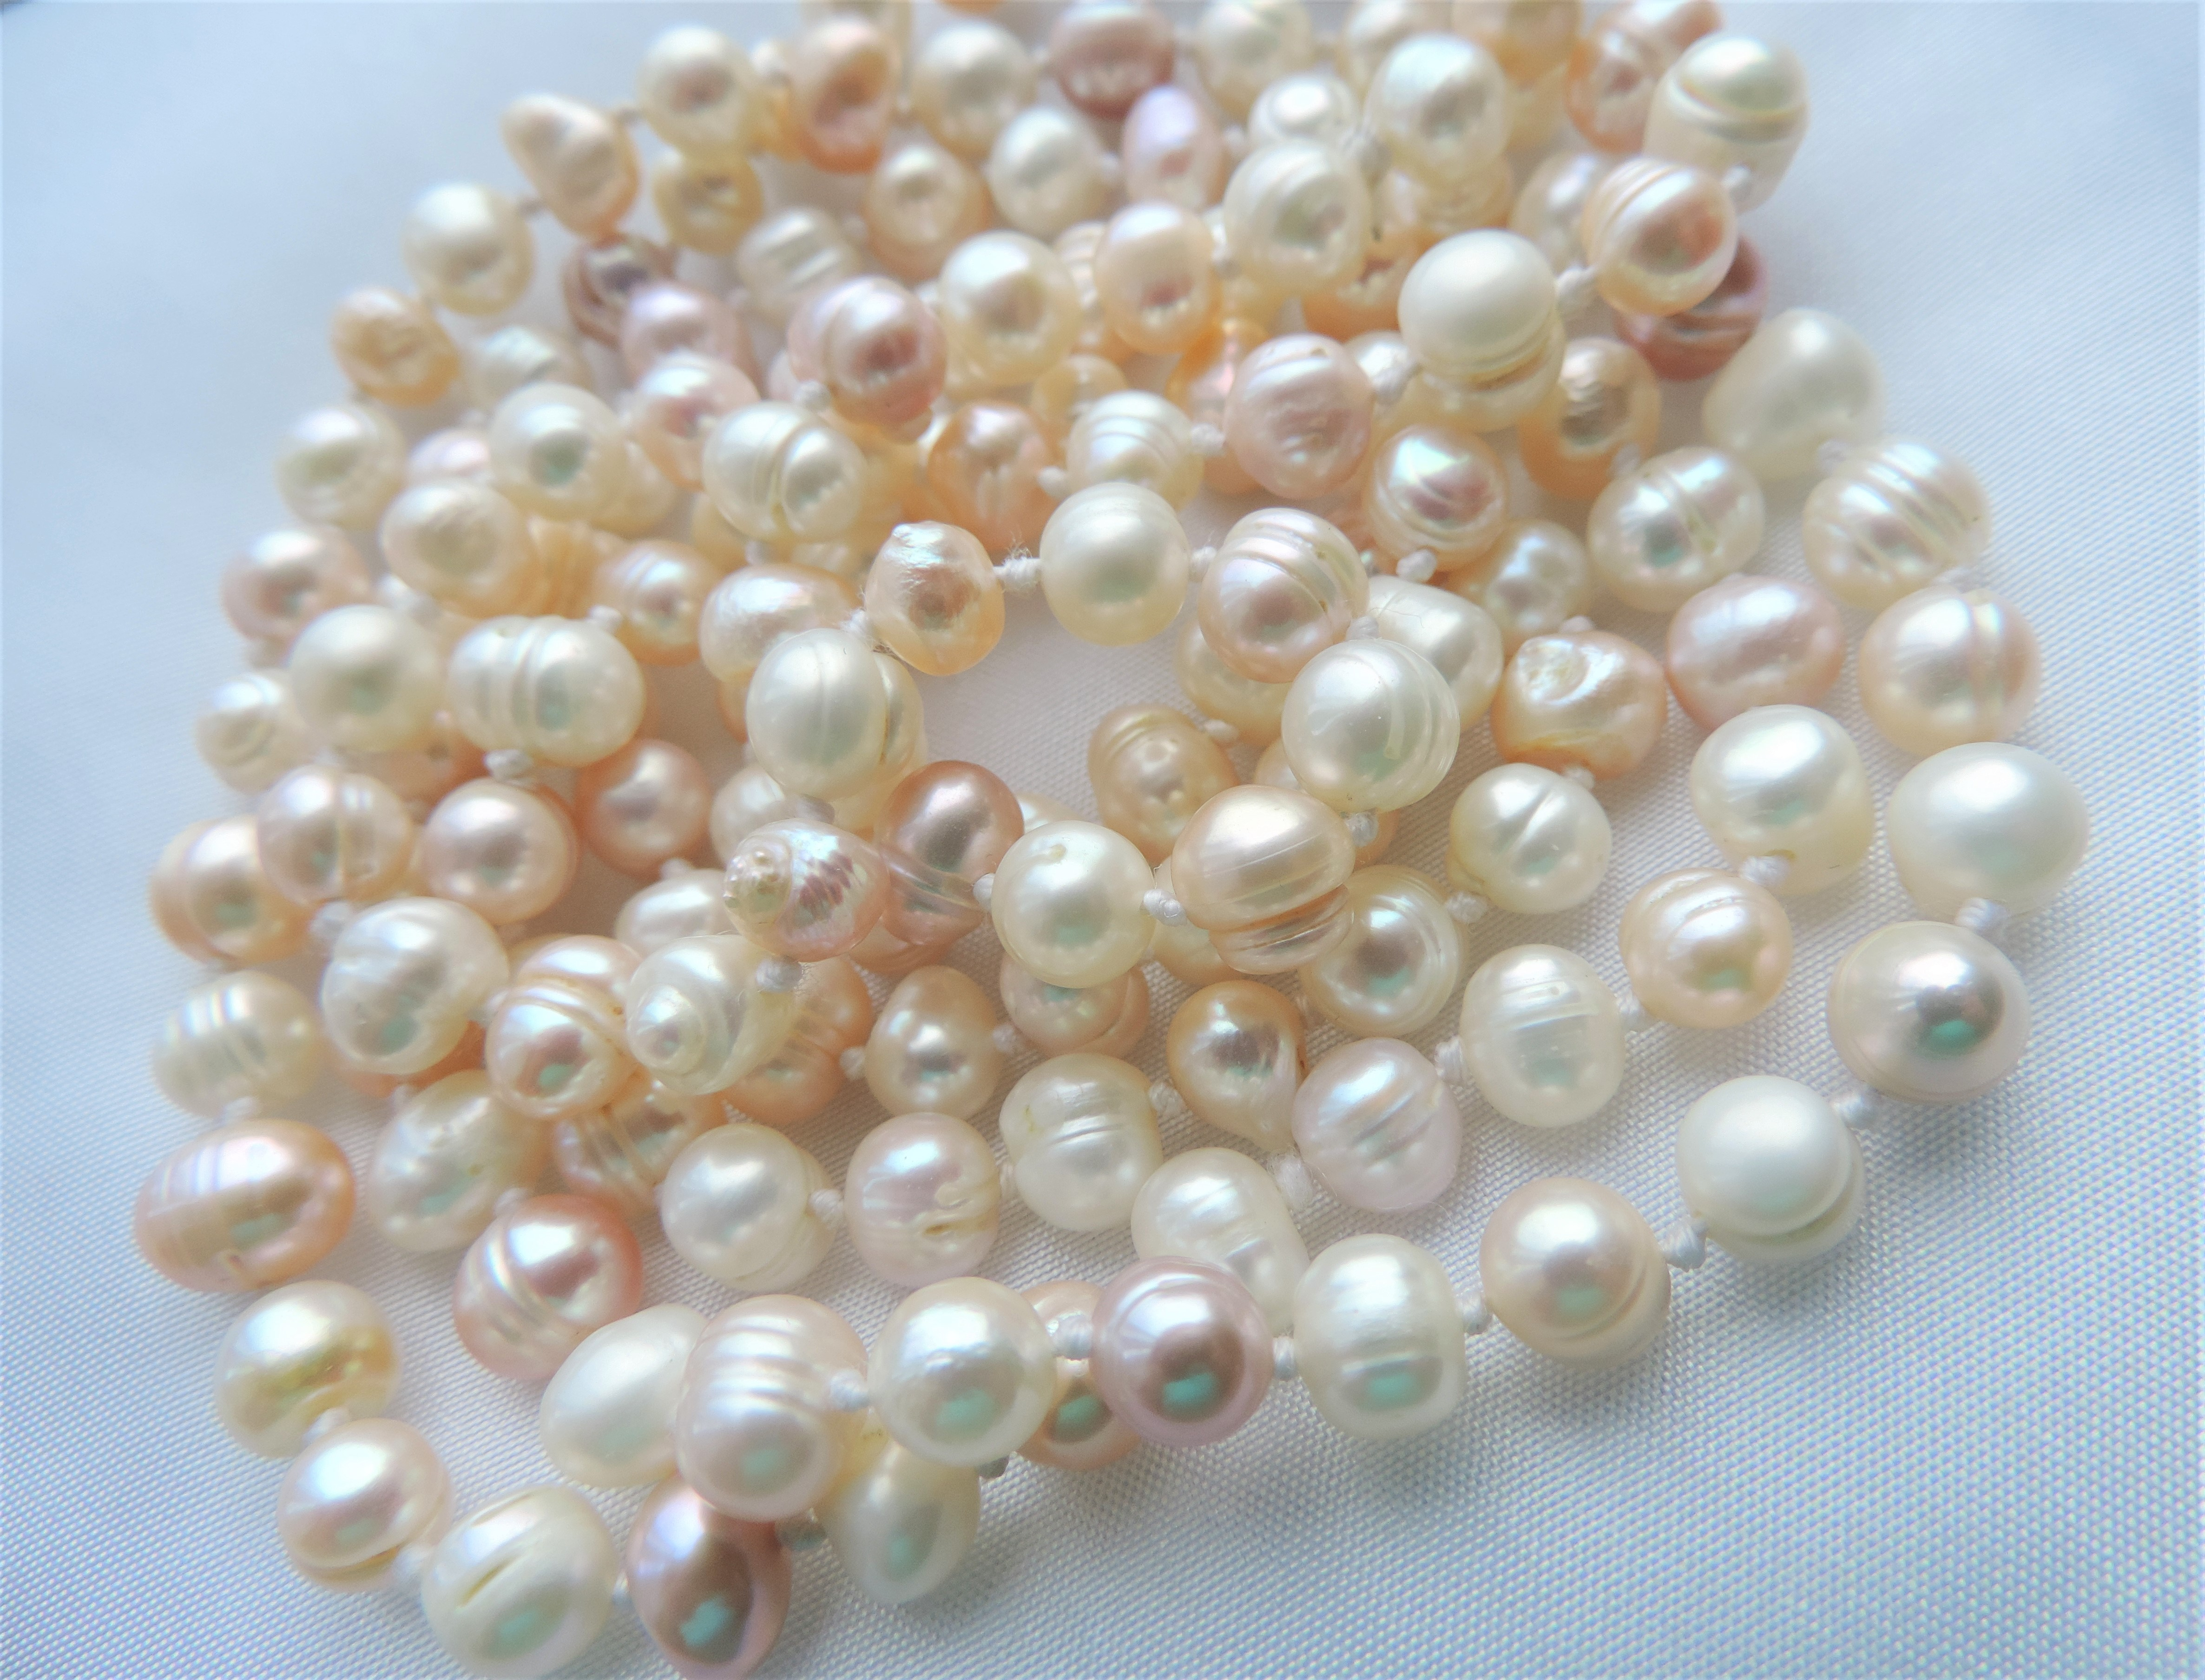 Lot 164 - Cream, Pink & Peach Cultured Pearl Necklace 45 inches